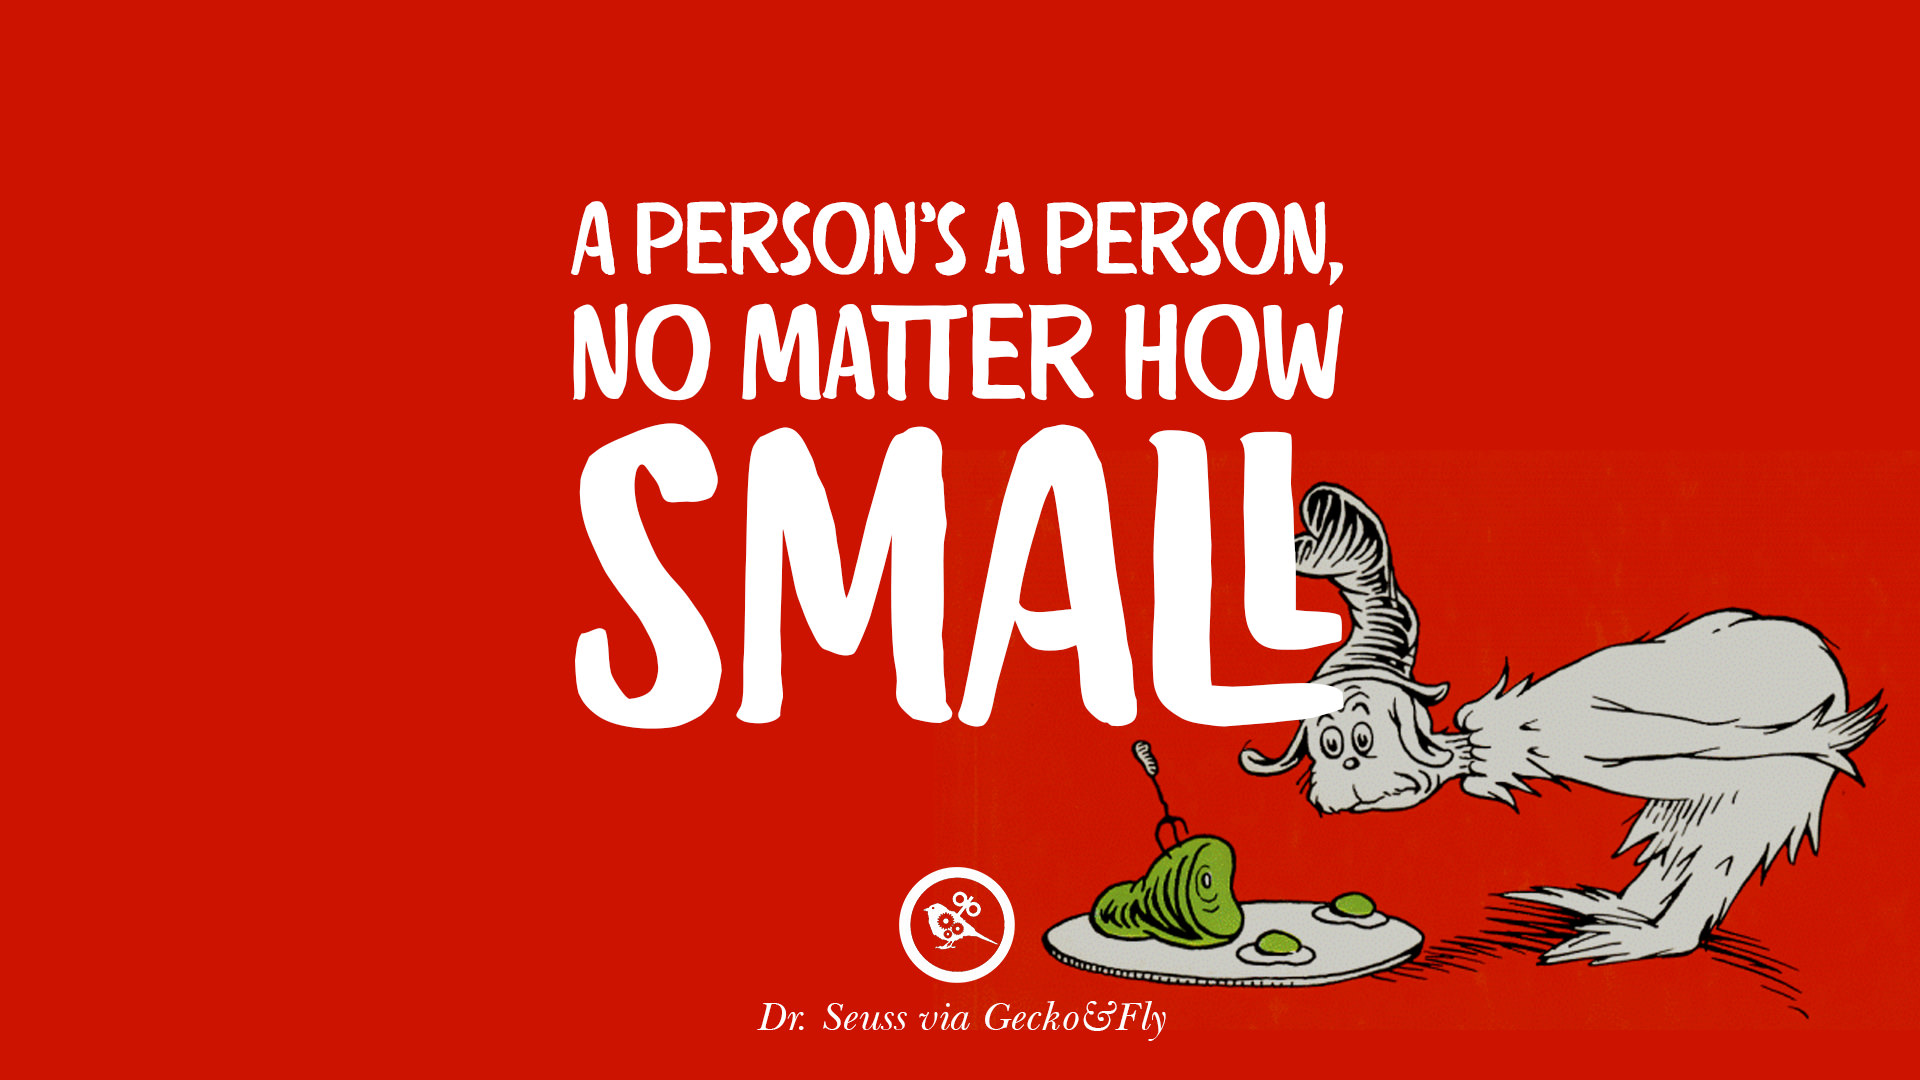 10 Beautiful Dr Seuss Quotes On Love And Life